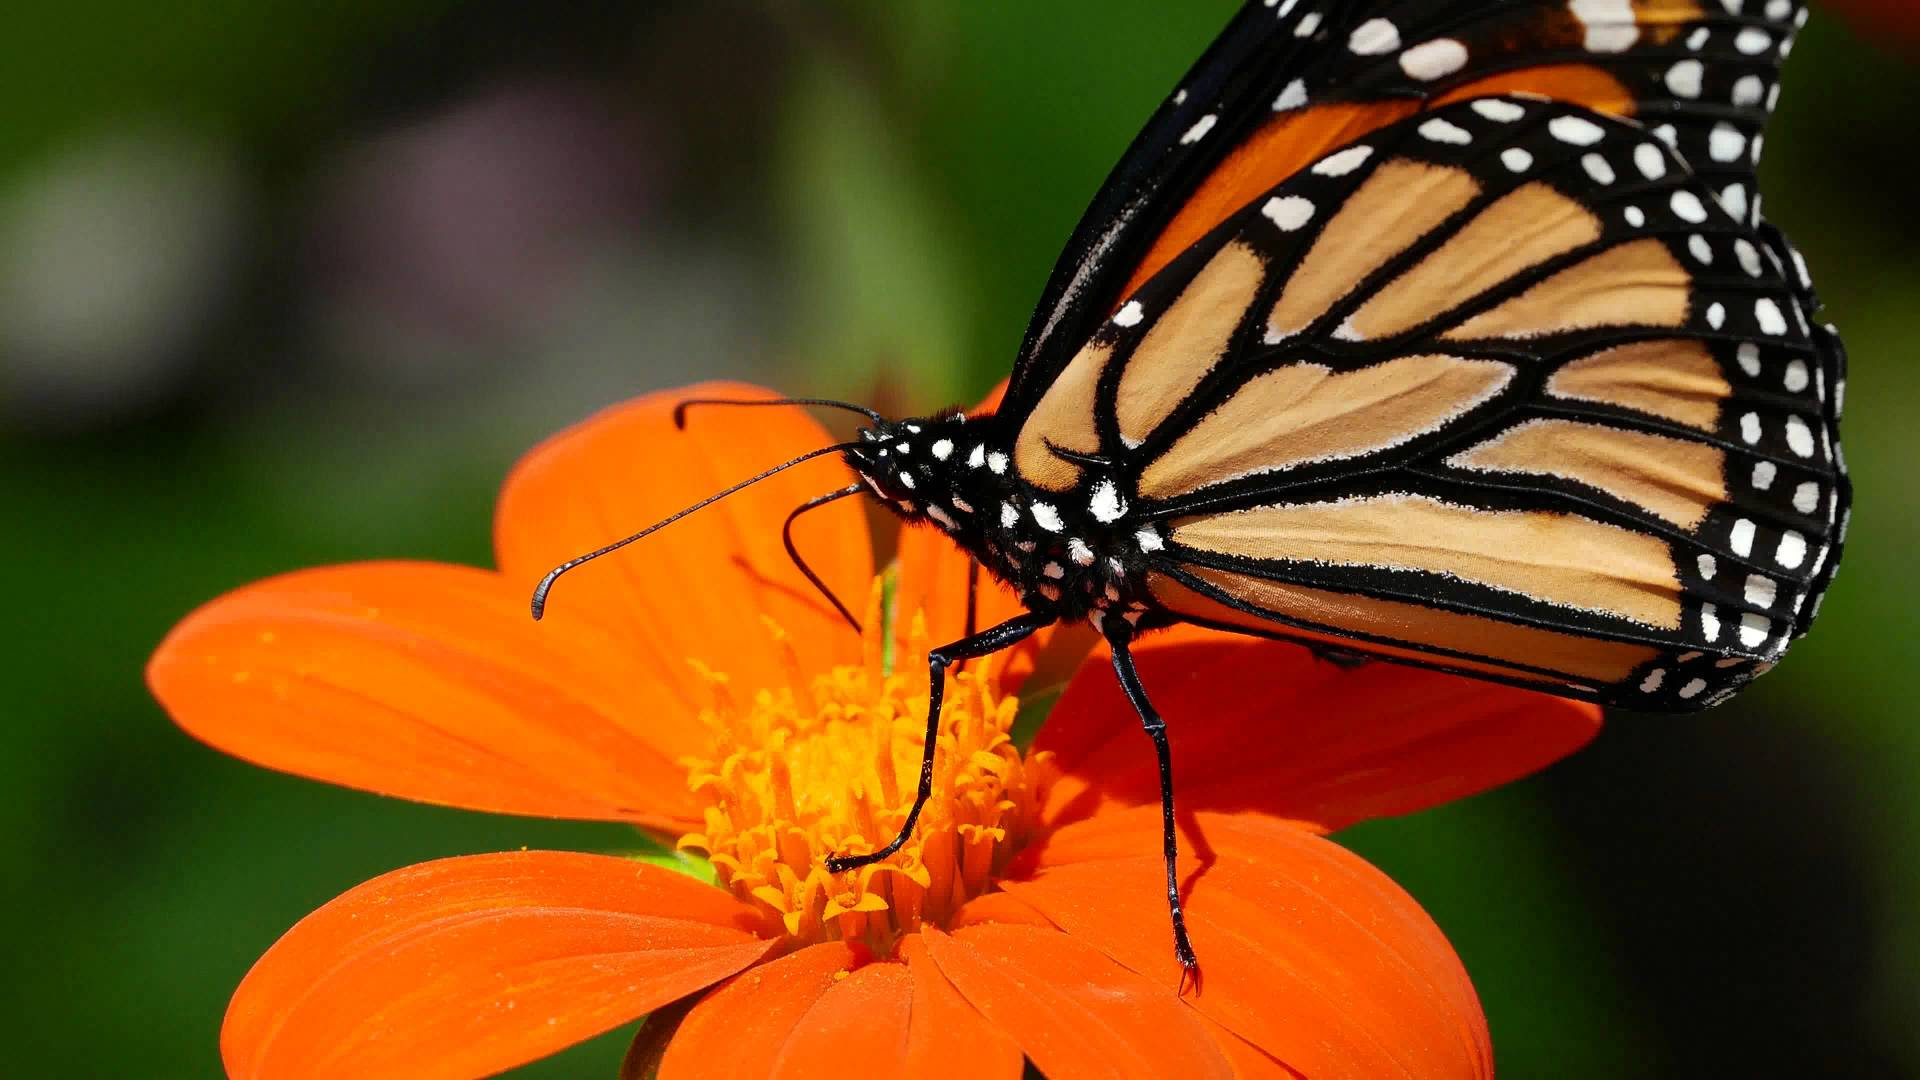 4K Butterfly Wallpapers High Quality | Download Free